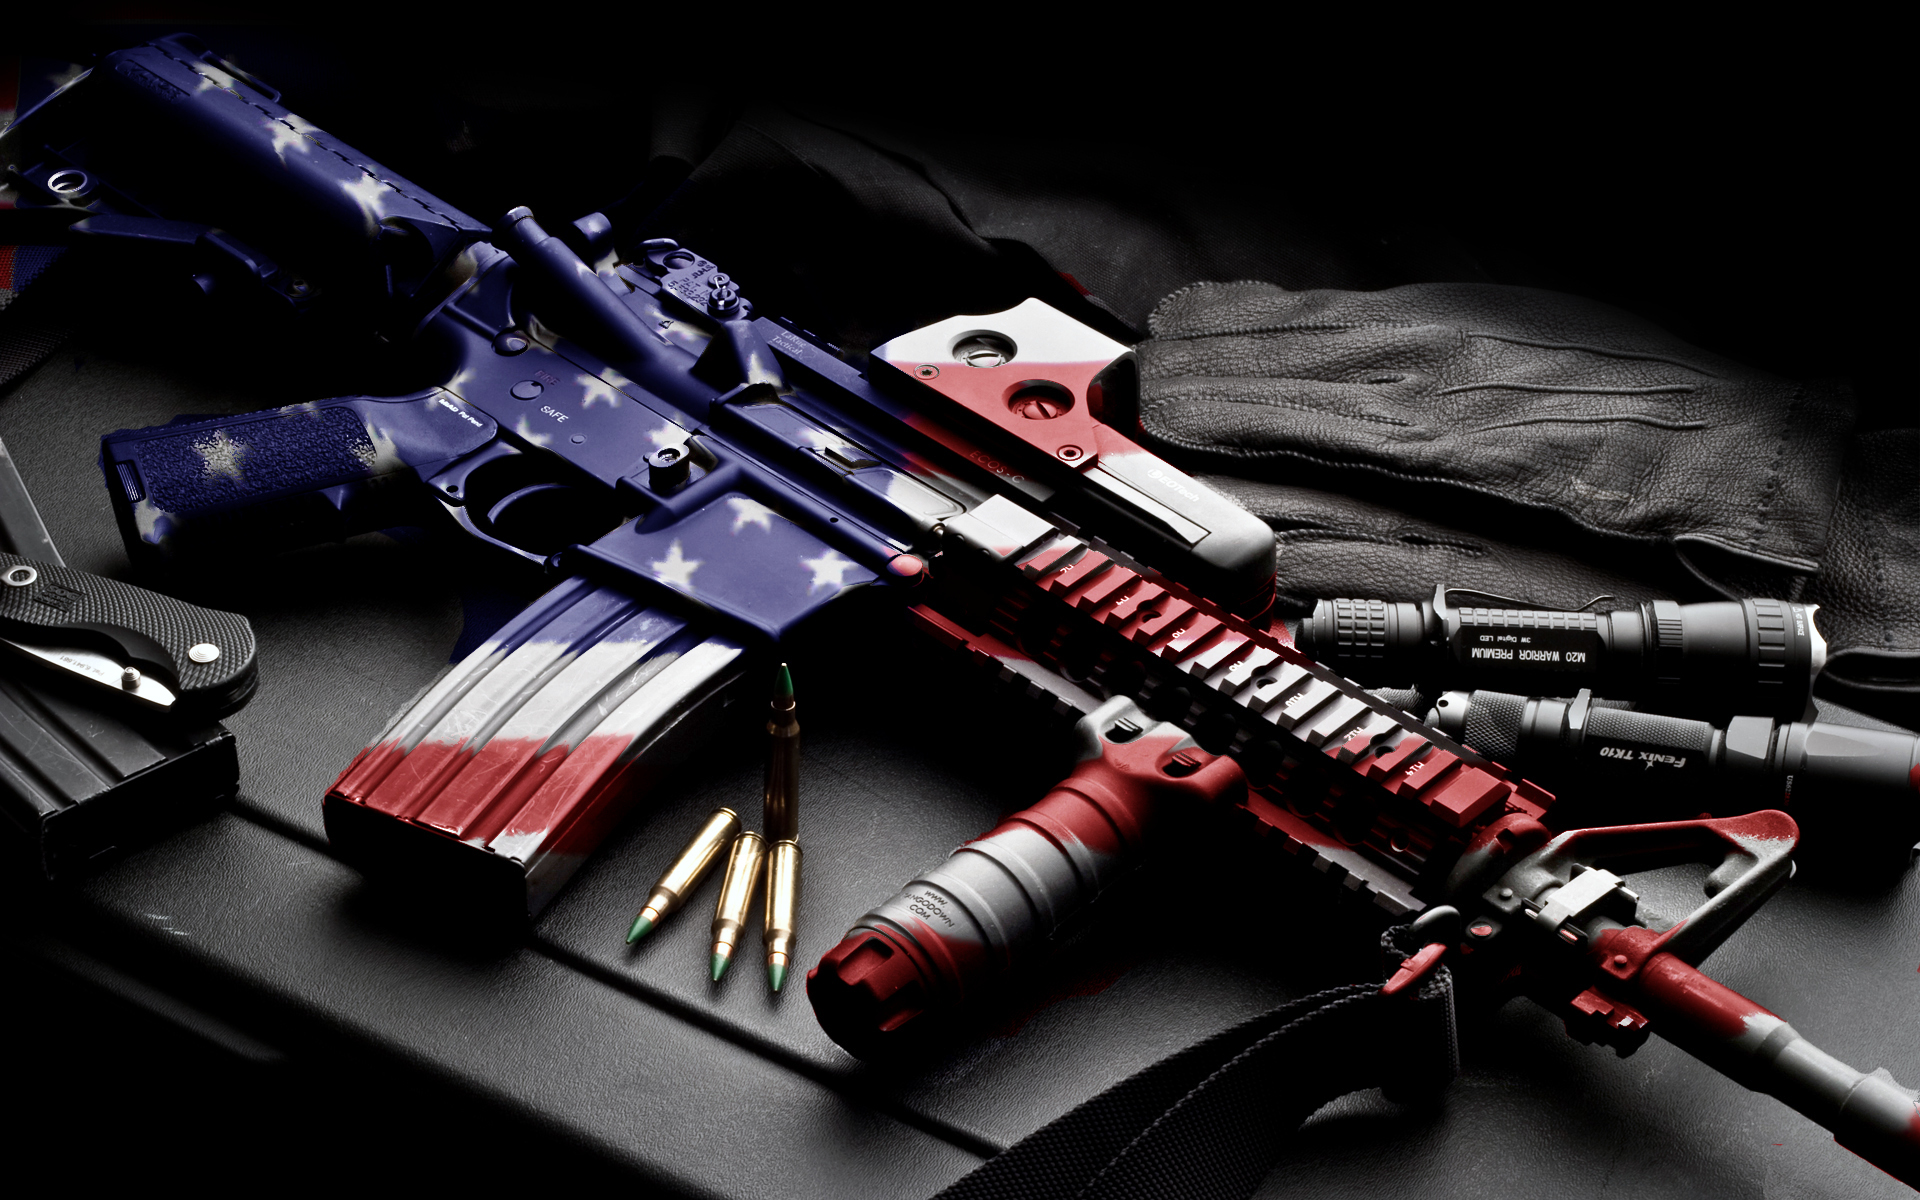 usa america guns mech machine bullet ammo ammuntion flag wallpaper 1920x1200